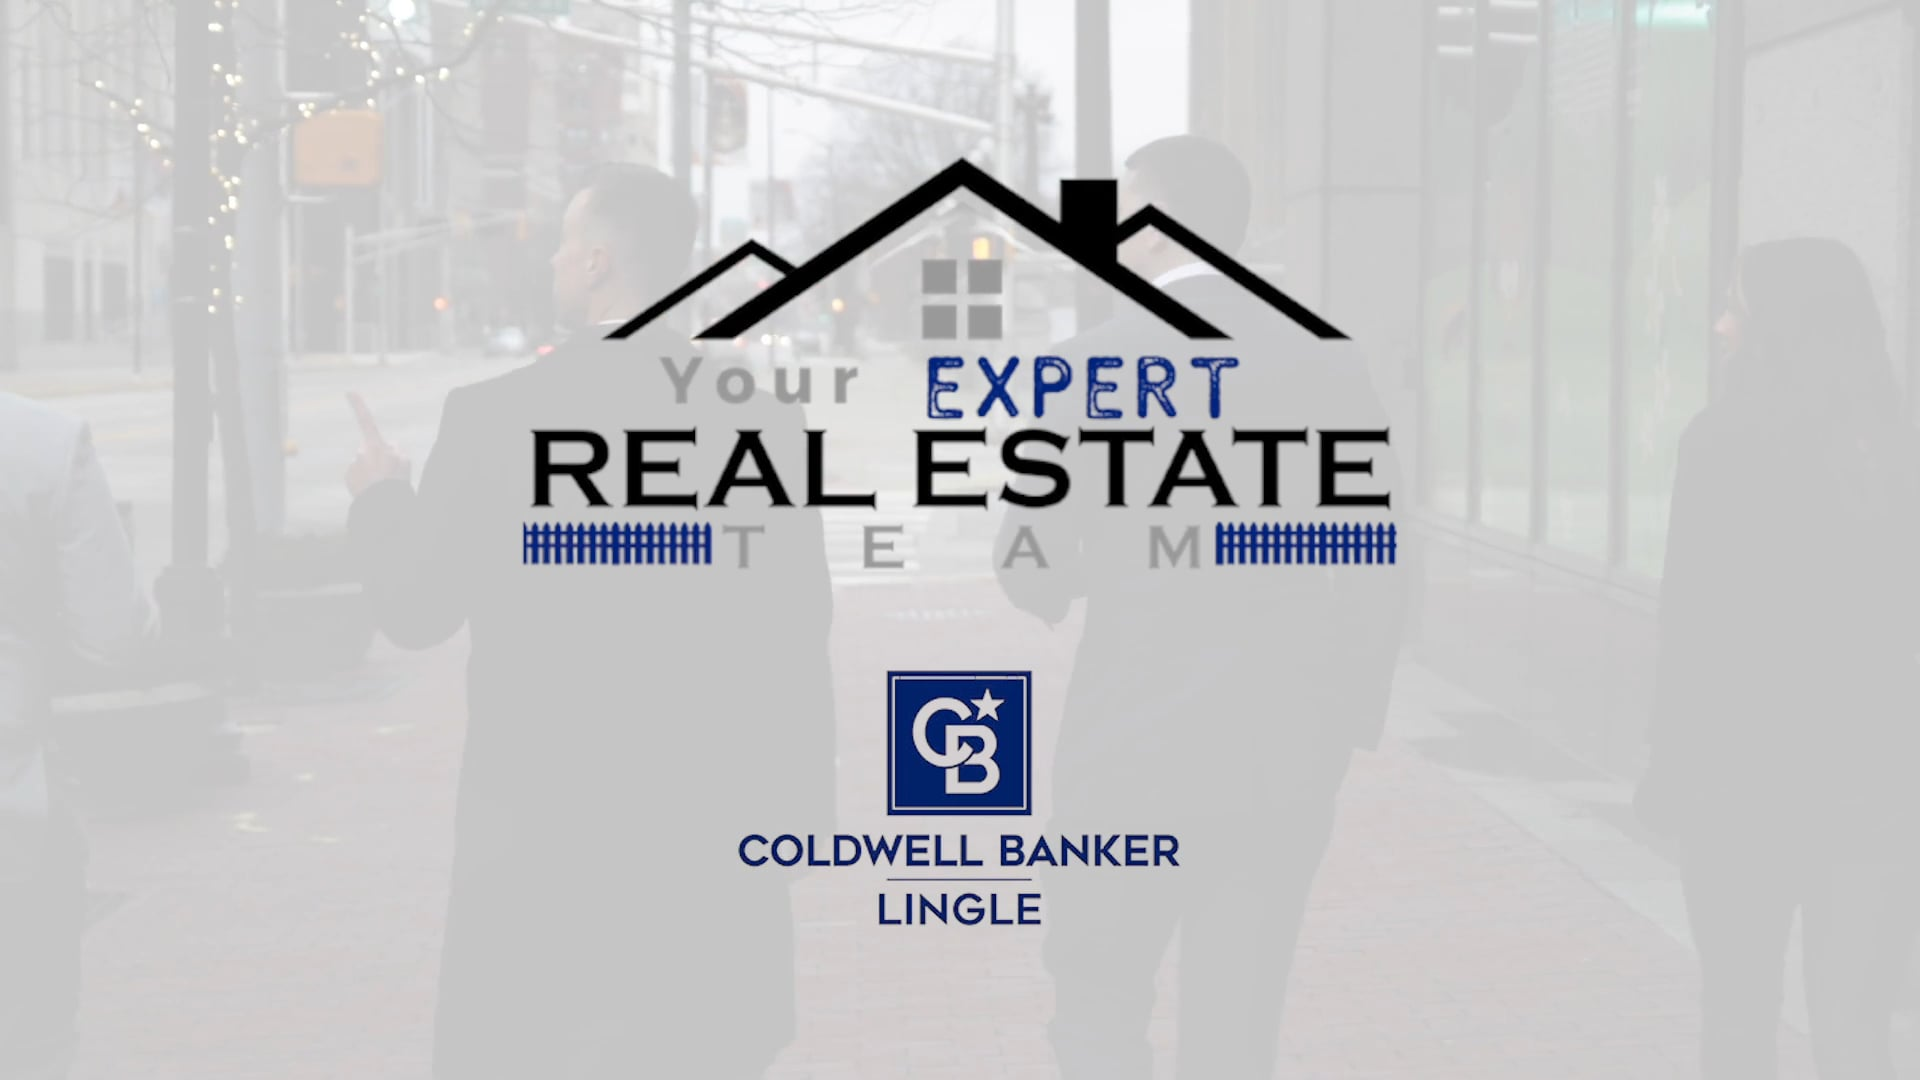 Your Expert Real Estate Team